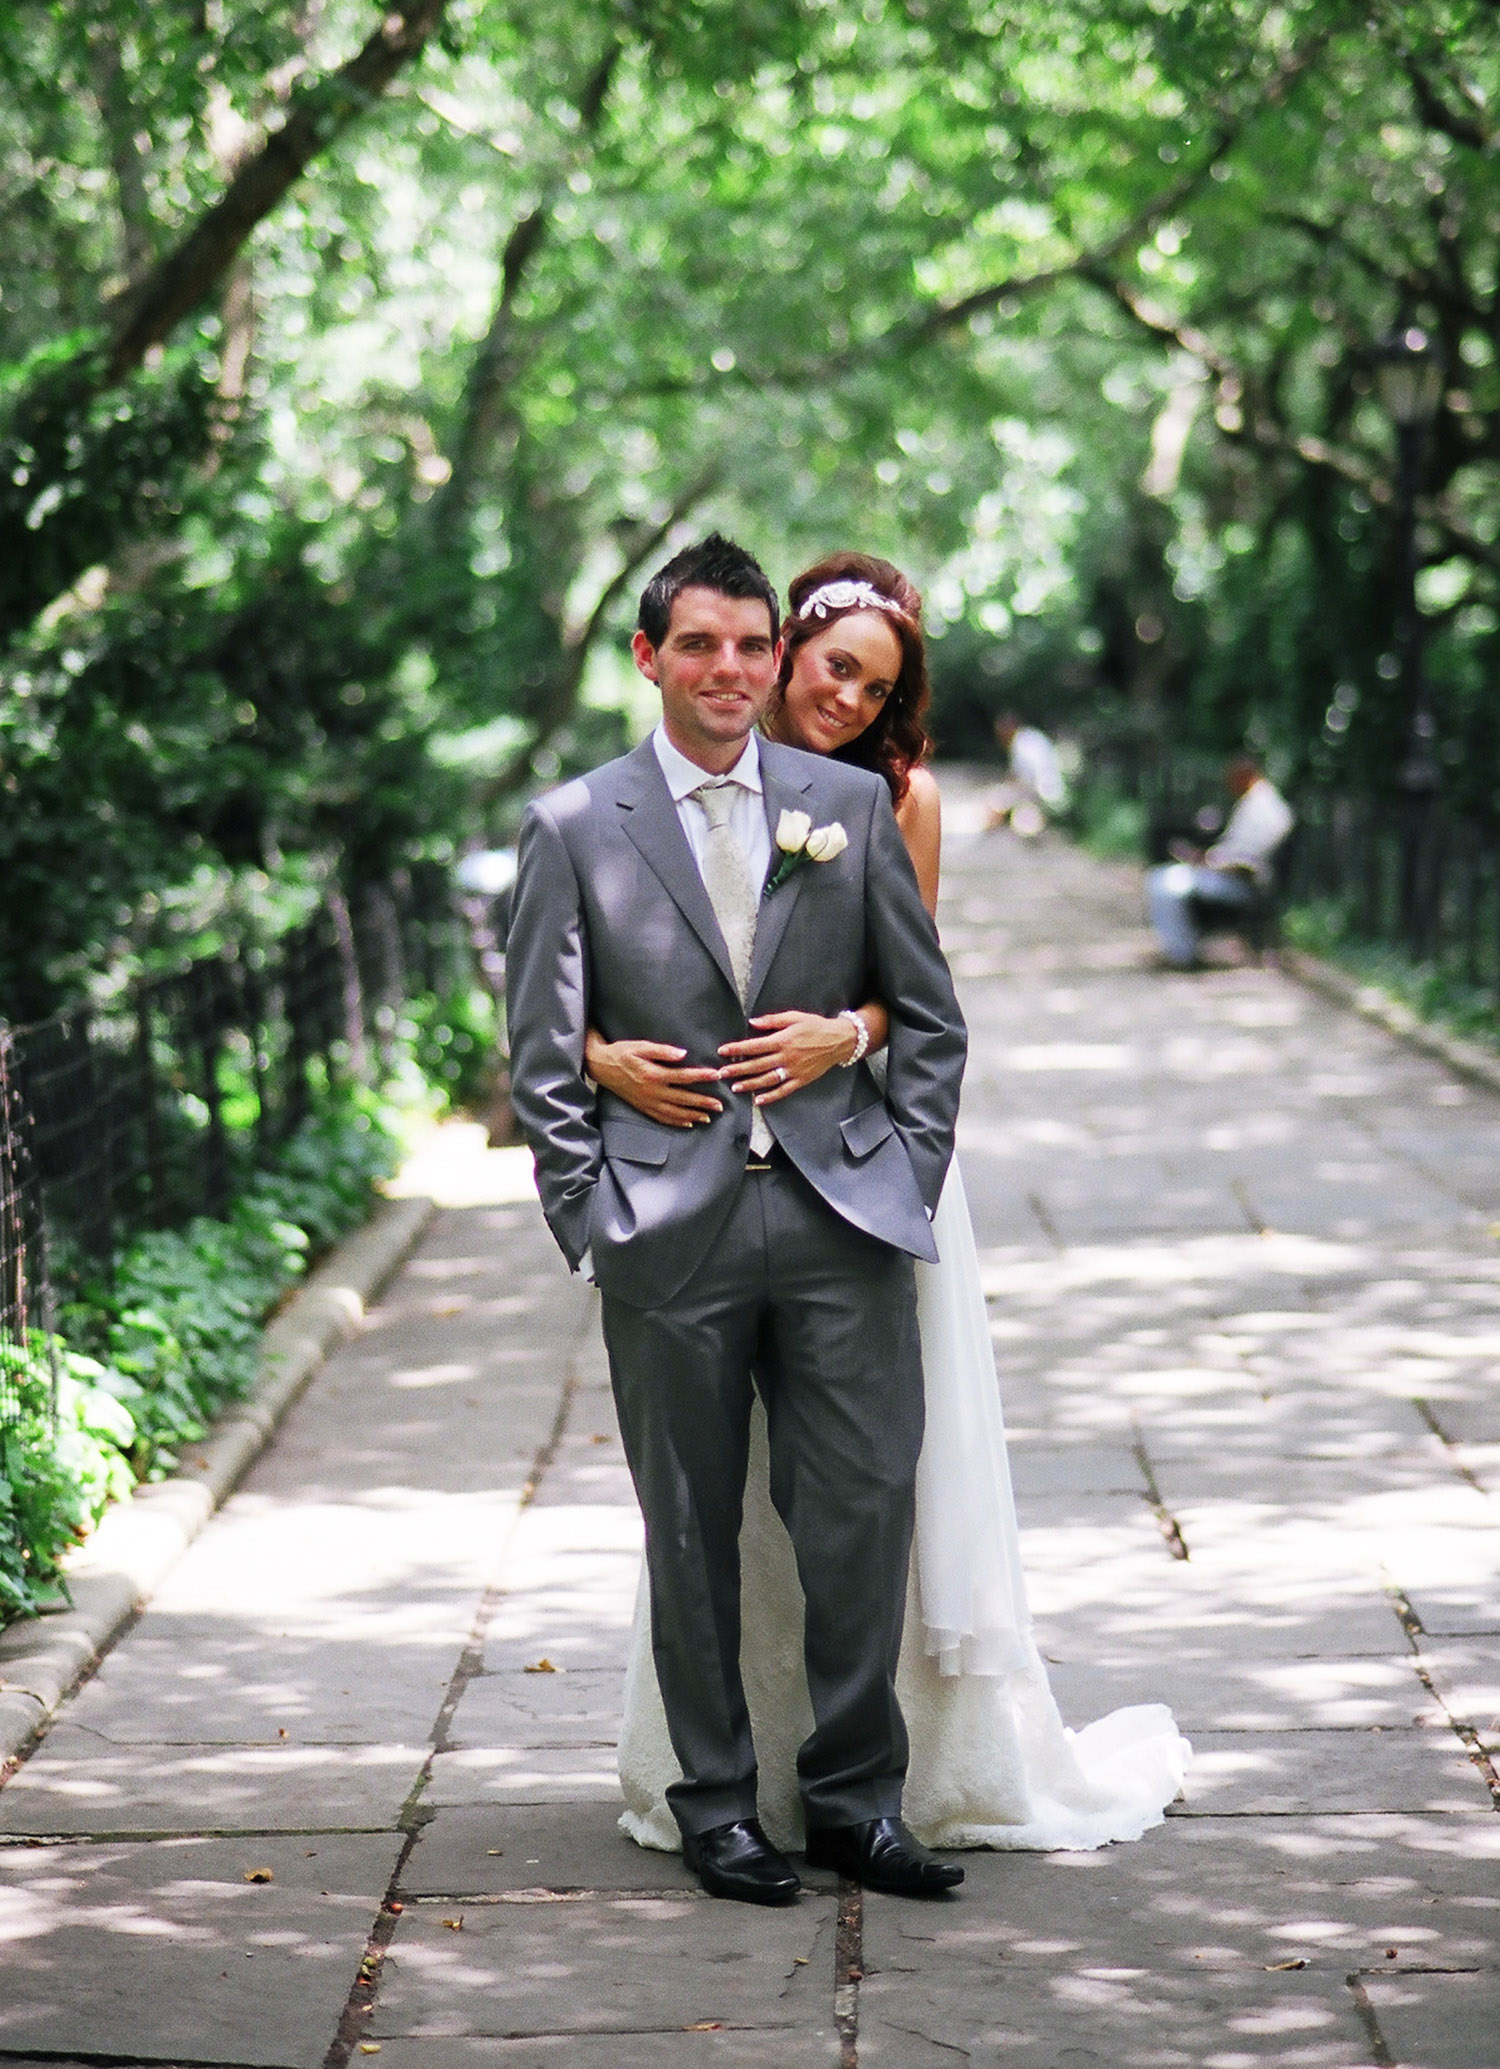 nyc conservatory garden mini wedding photo by wendy g photography